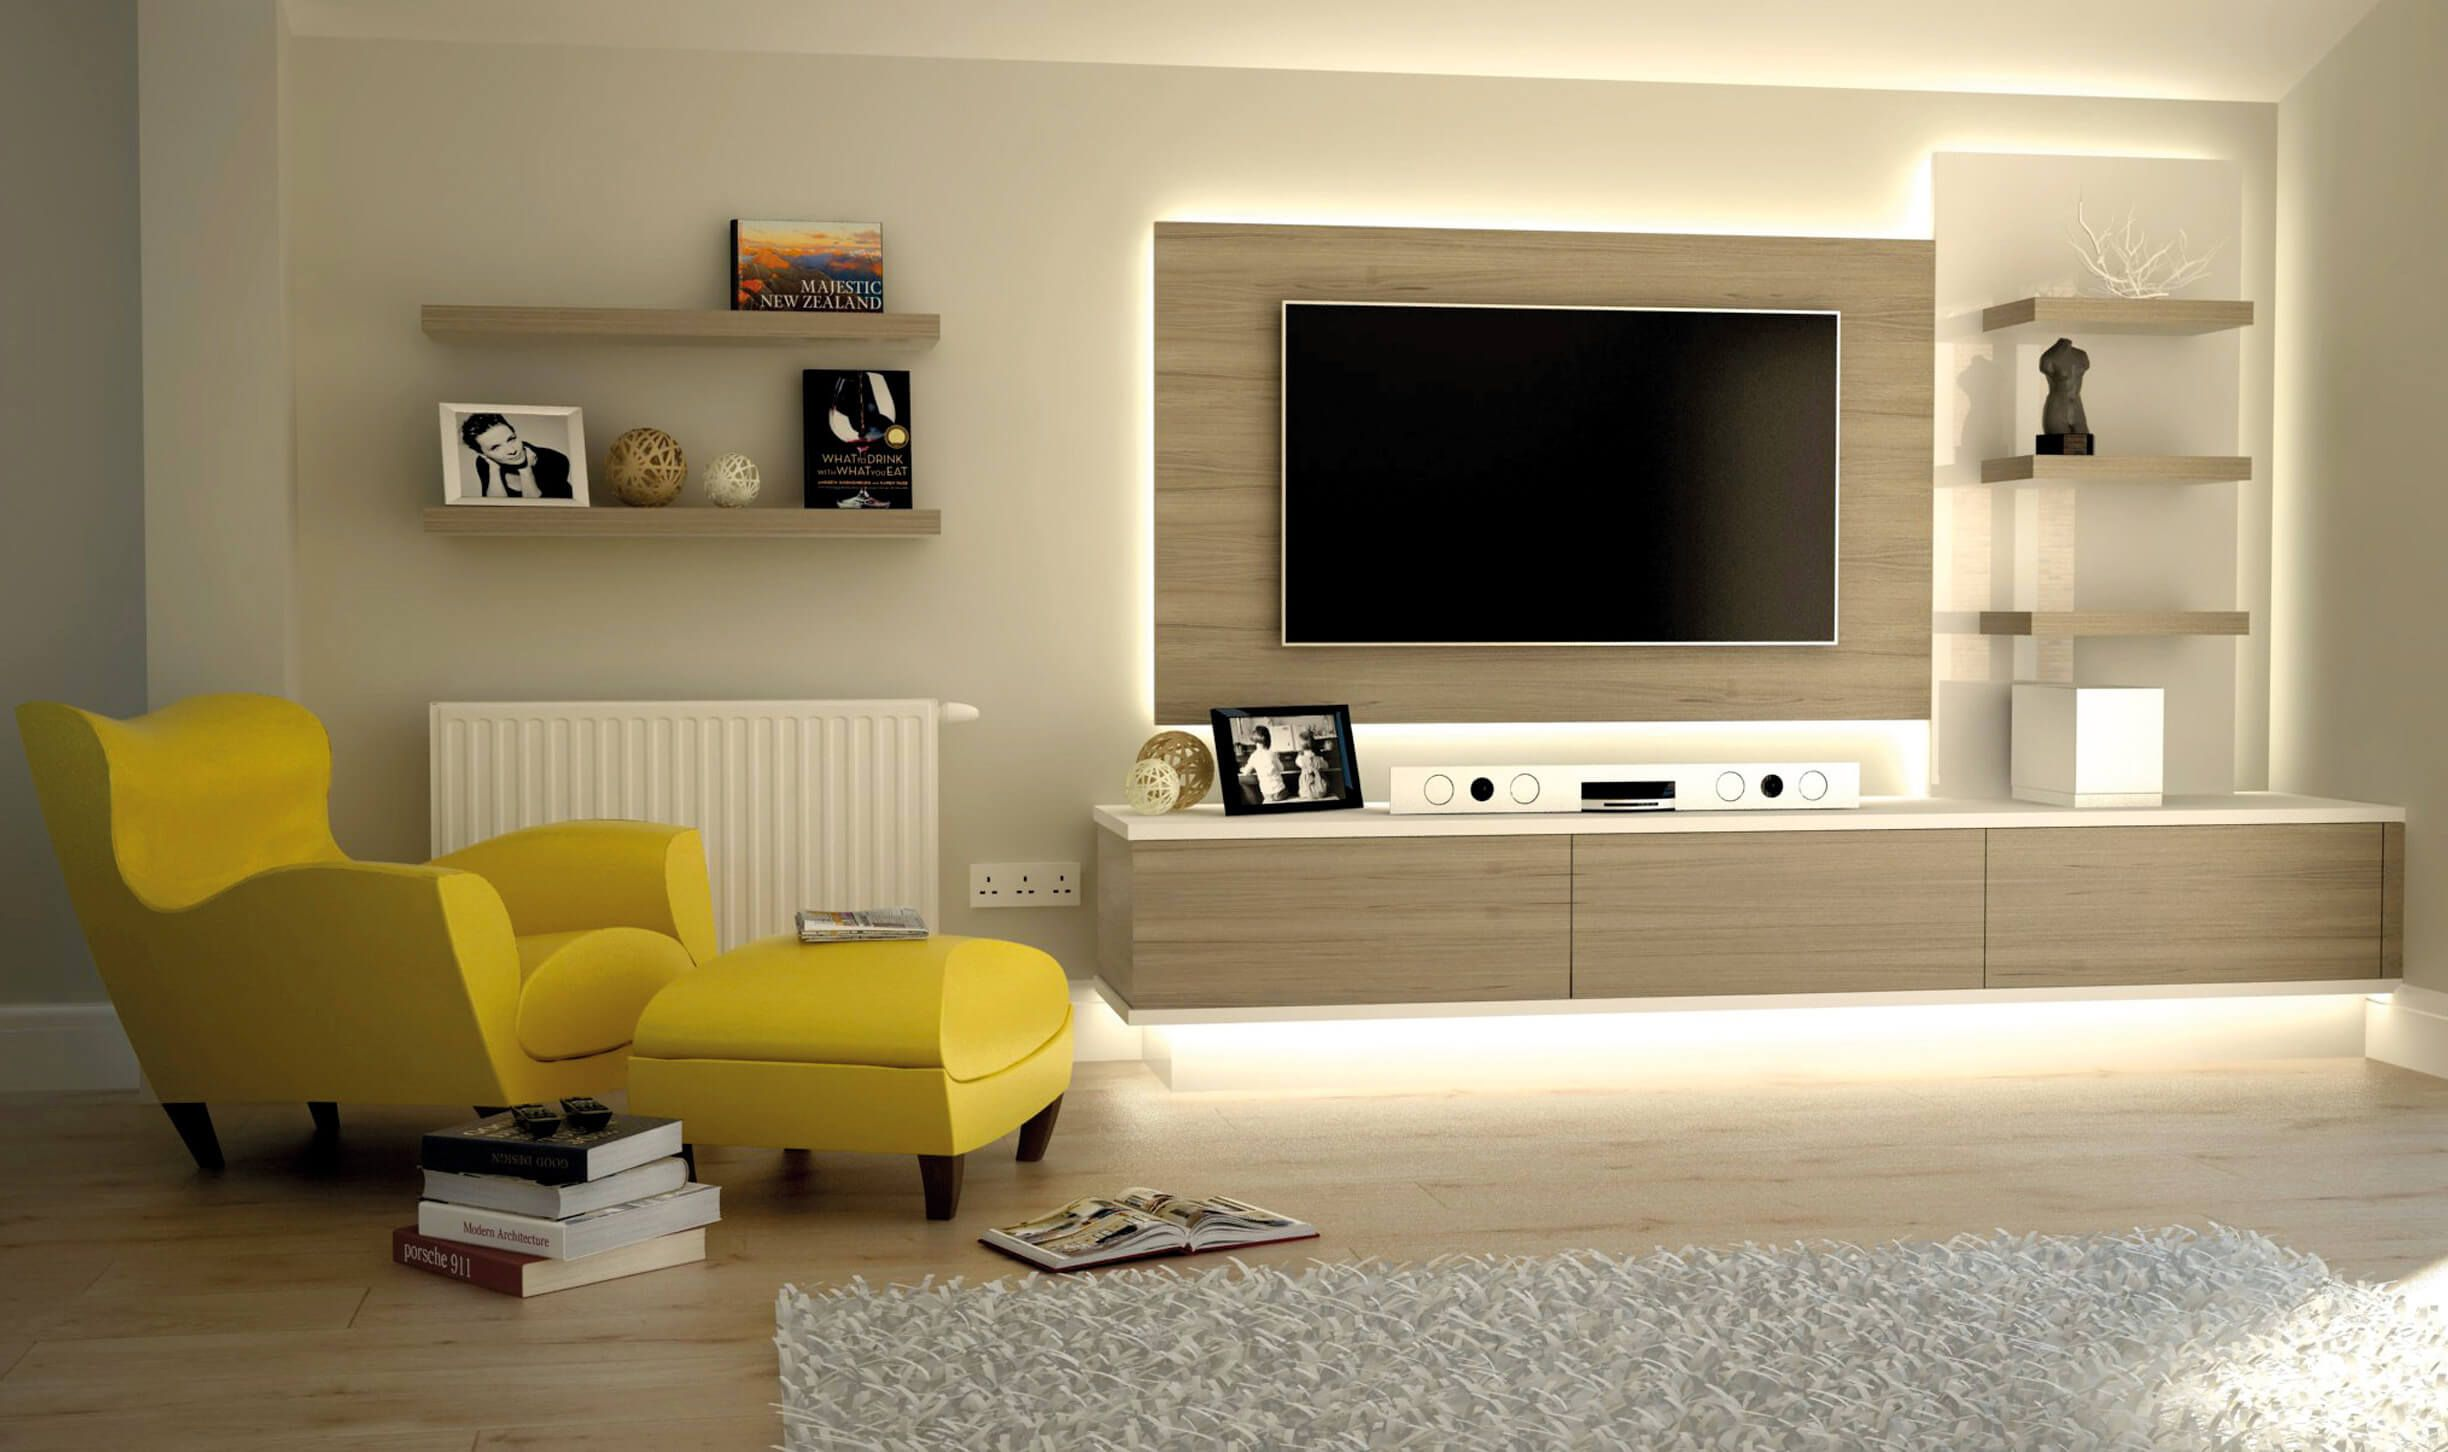 Bespoke Tv Cabinets Bookcases And Storage Units For Over 50 Years